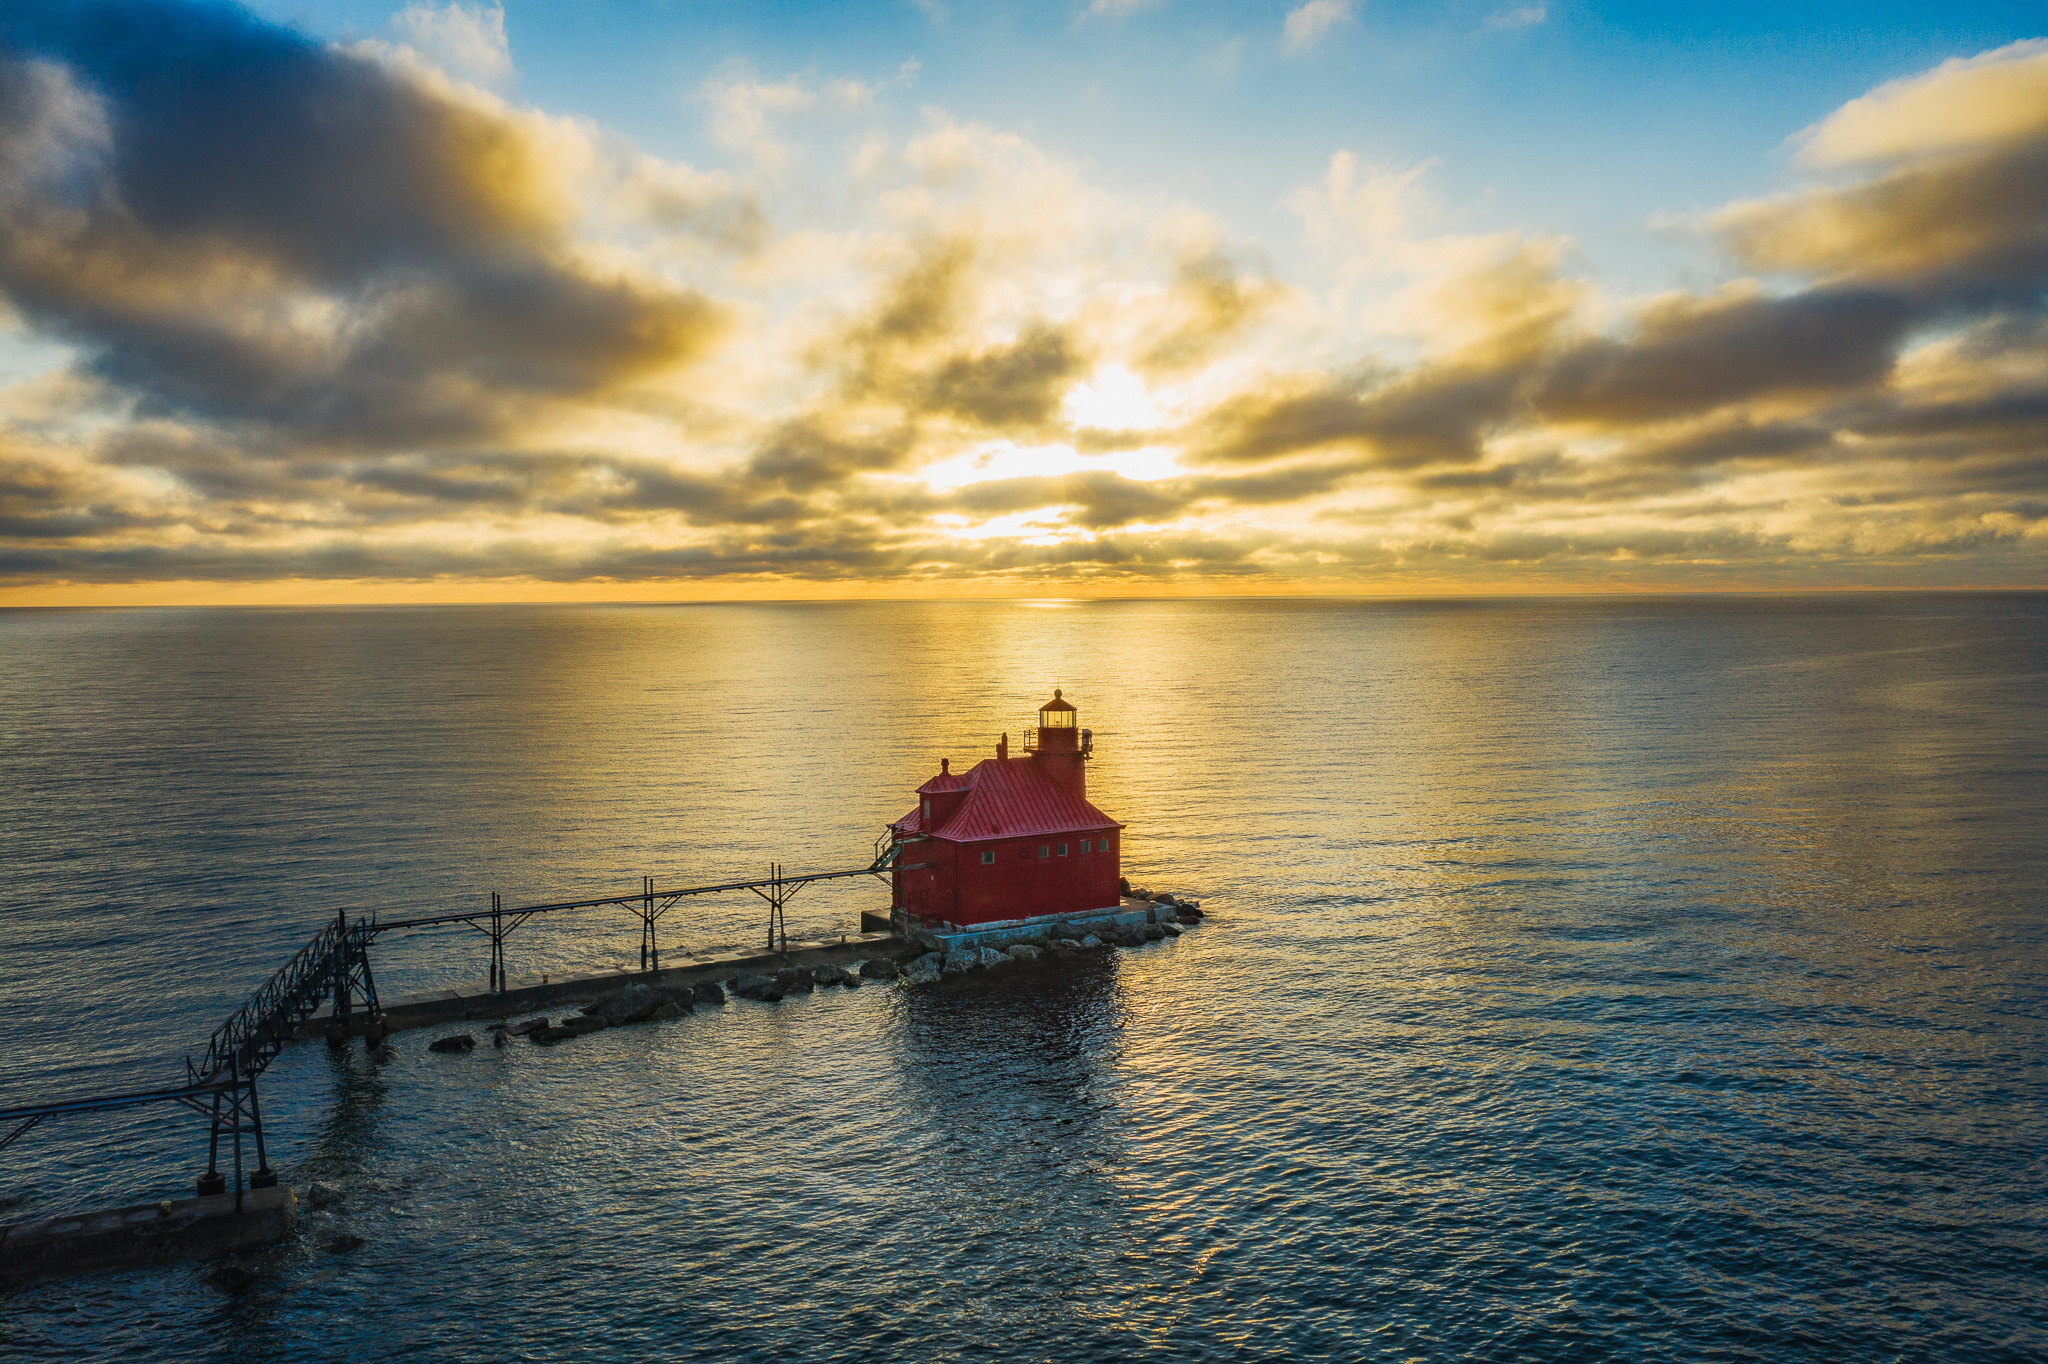 sturgeon bay, sunrise, lighthouse, drone, aerial, clouds over lake michigan, door county, wsiconsin, door county photographer